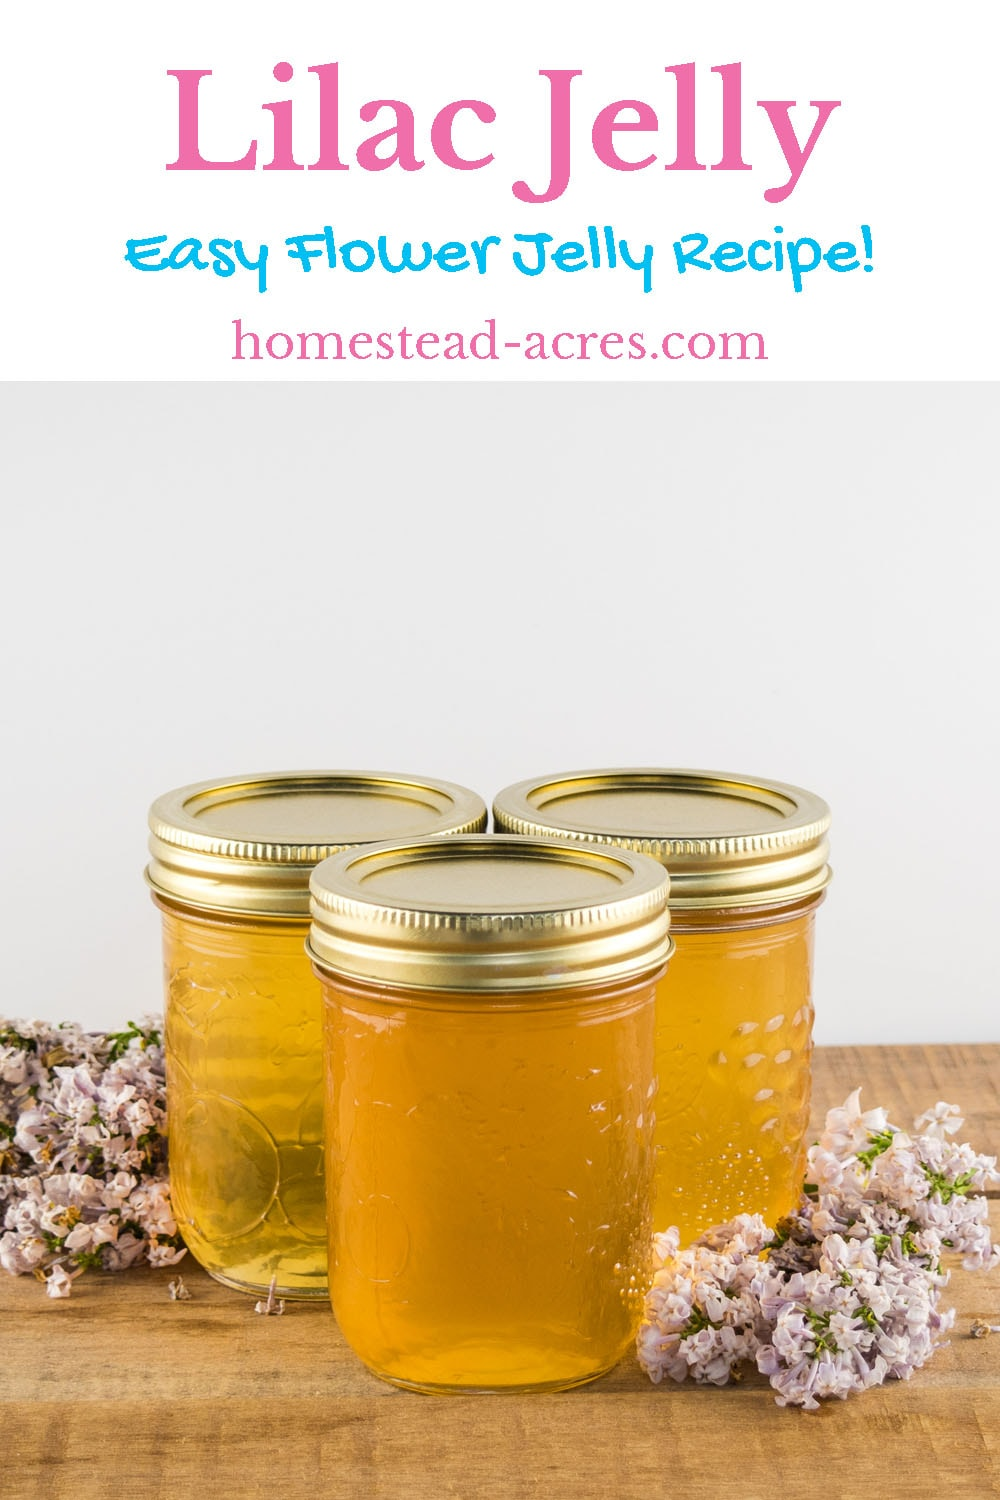 Lilac Jelly - Easy Flower Jelly Recipe! text overlaid on top of a photo of yellow lilac jelly in canning jars sitting on a table with lilac flowers.